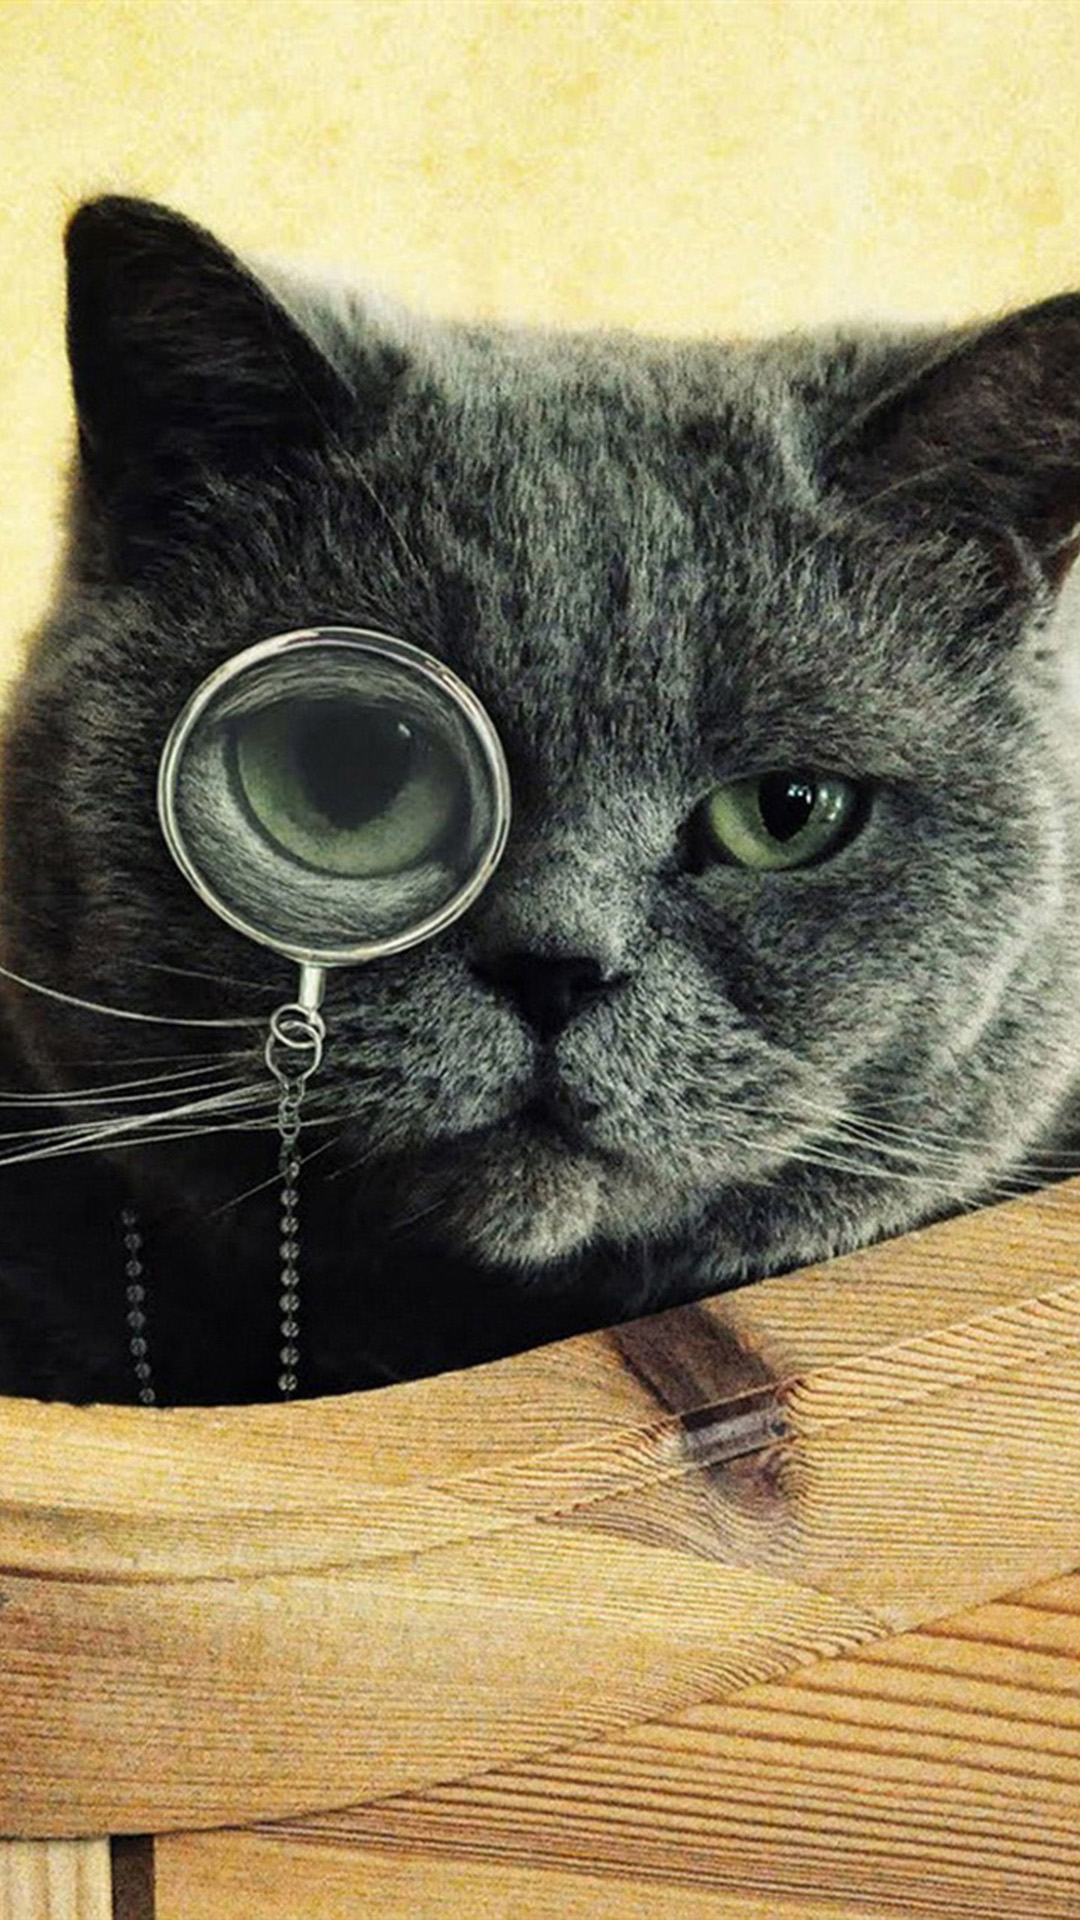 Cat glasses Wallpapers for Galaxy S5 1080x1920